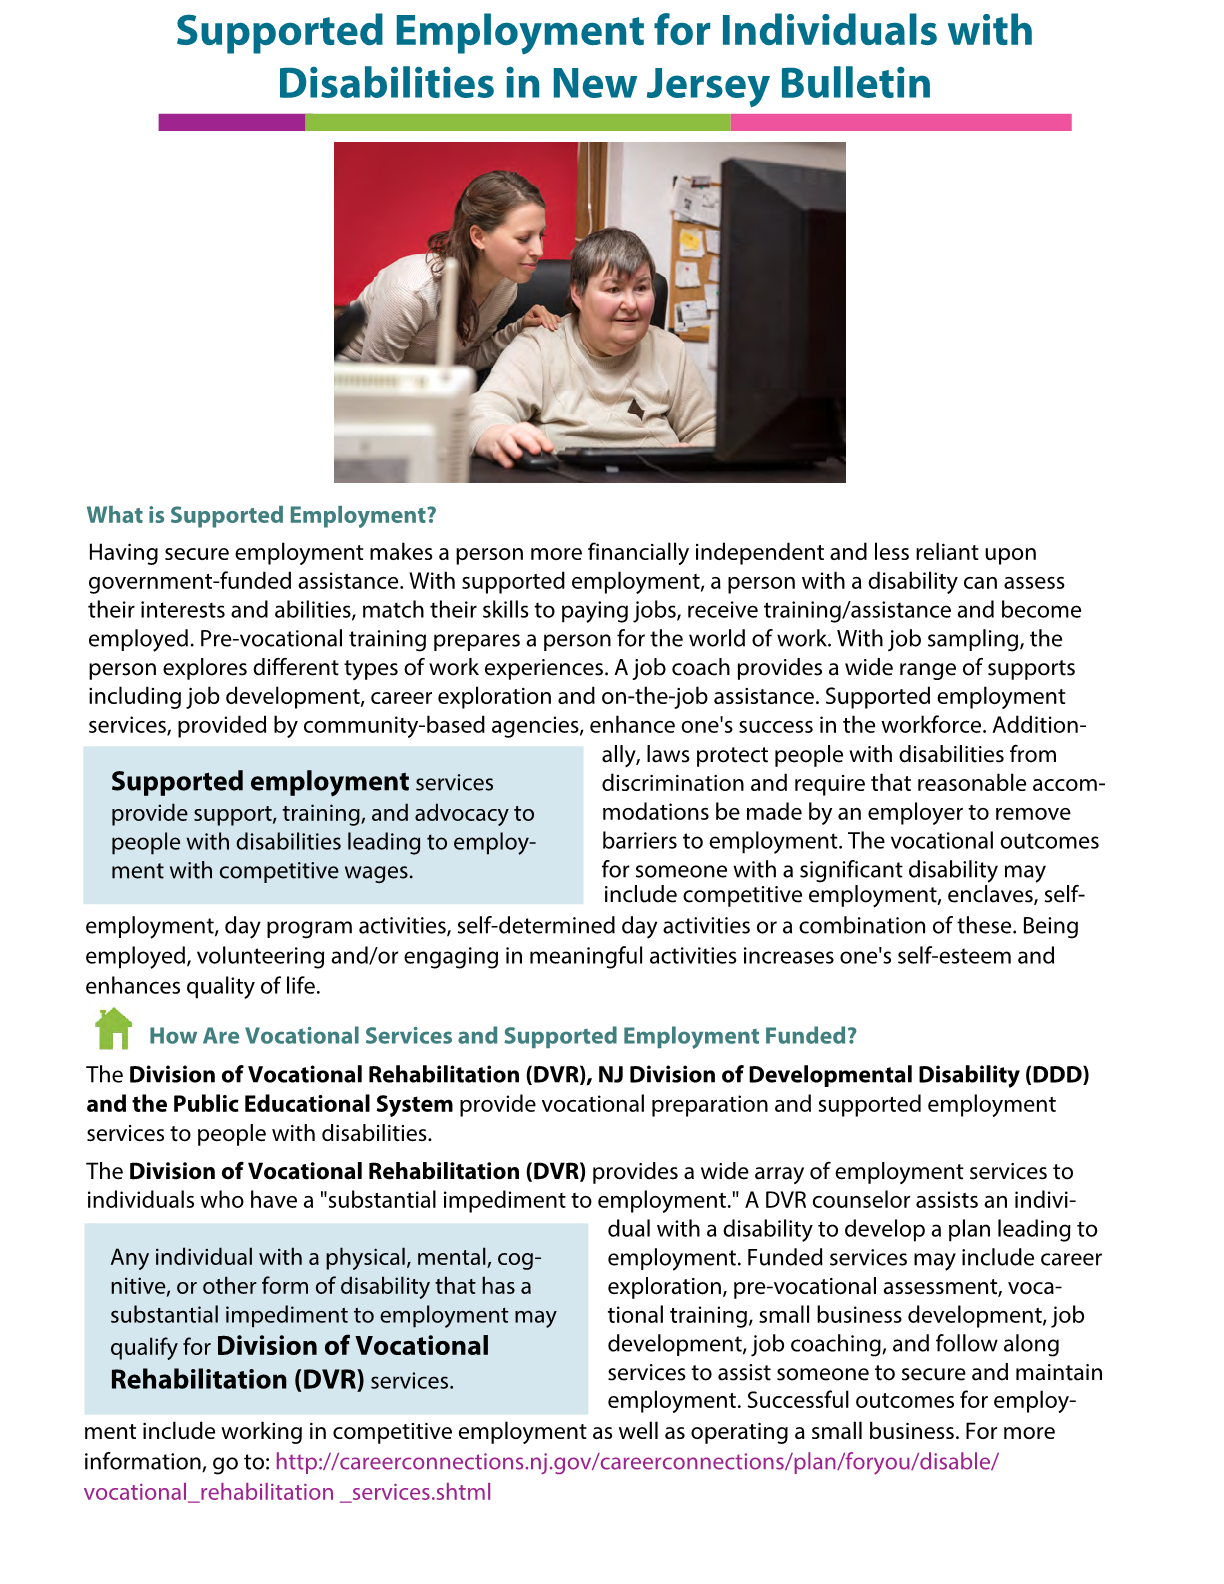 Supported Employment for Individuals with Disabilities in New Jersey